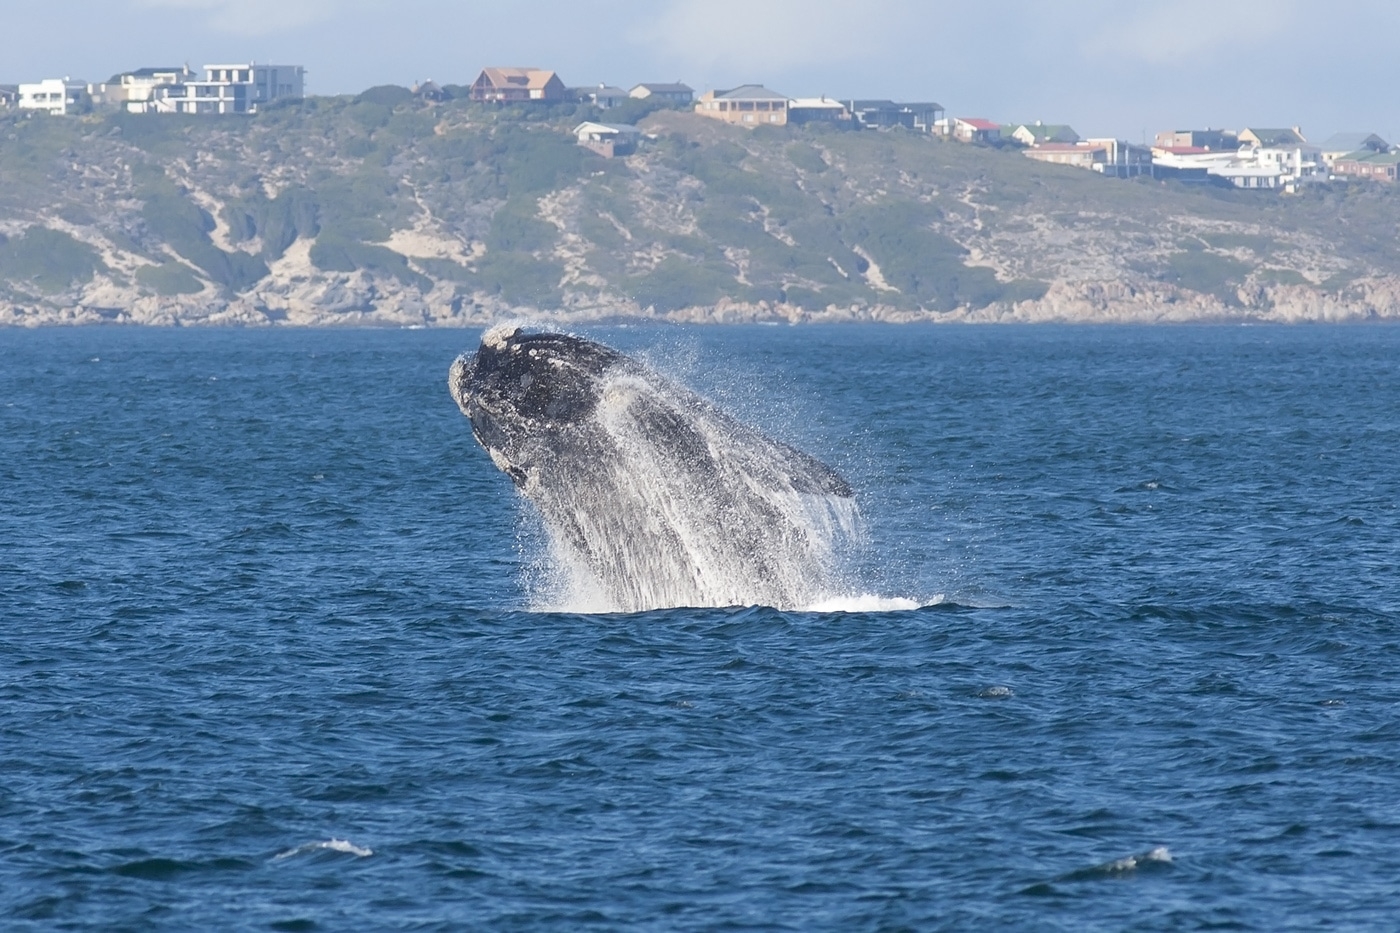 The Best Places in the world to whale watch: South Africa